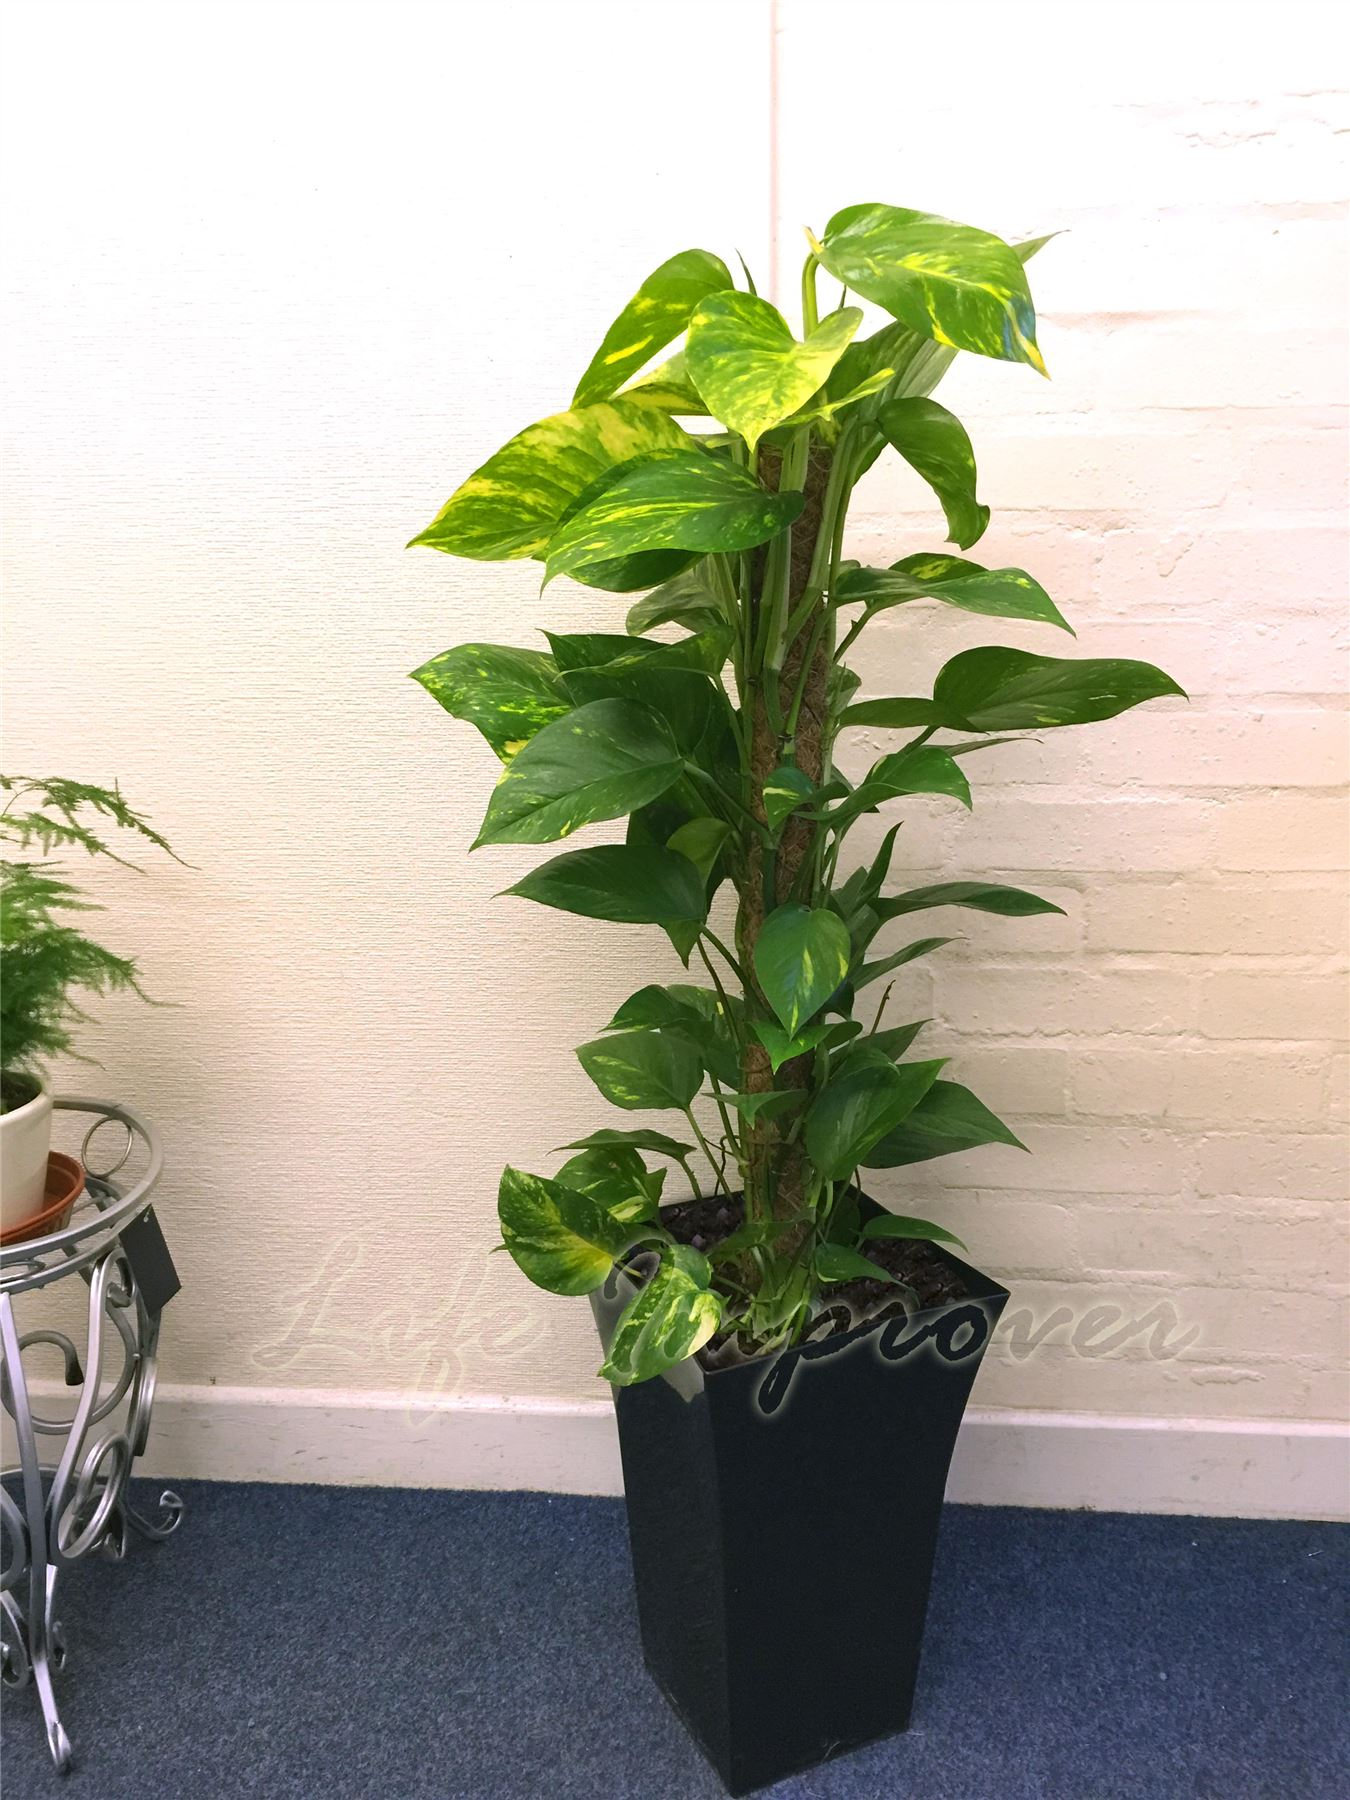 1 large indoor tree milano gloss pot office house Large house plants